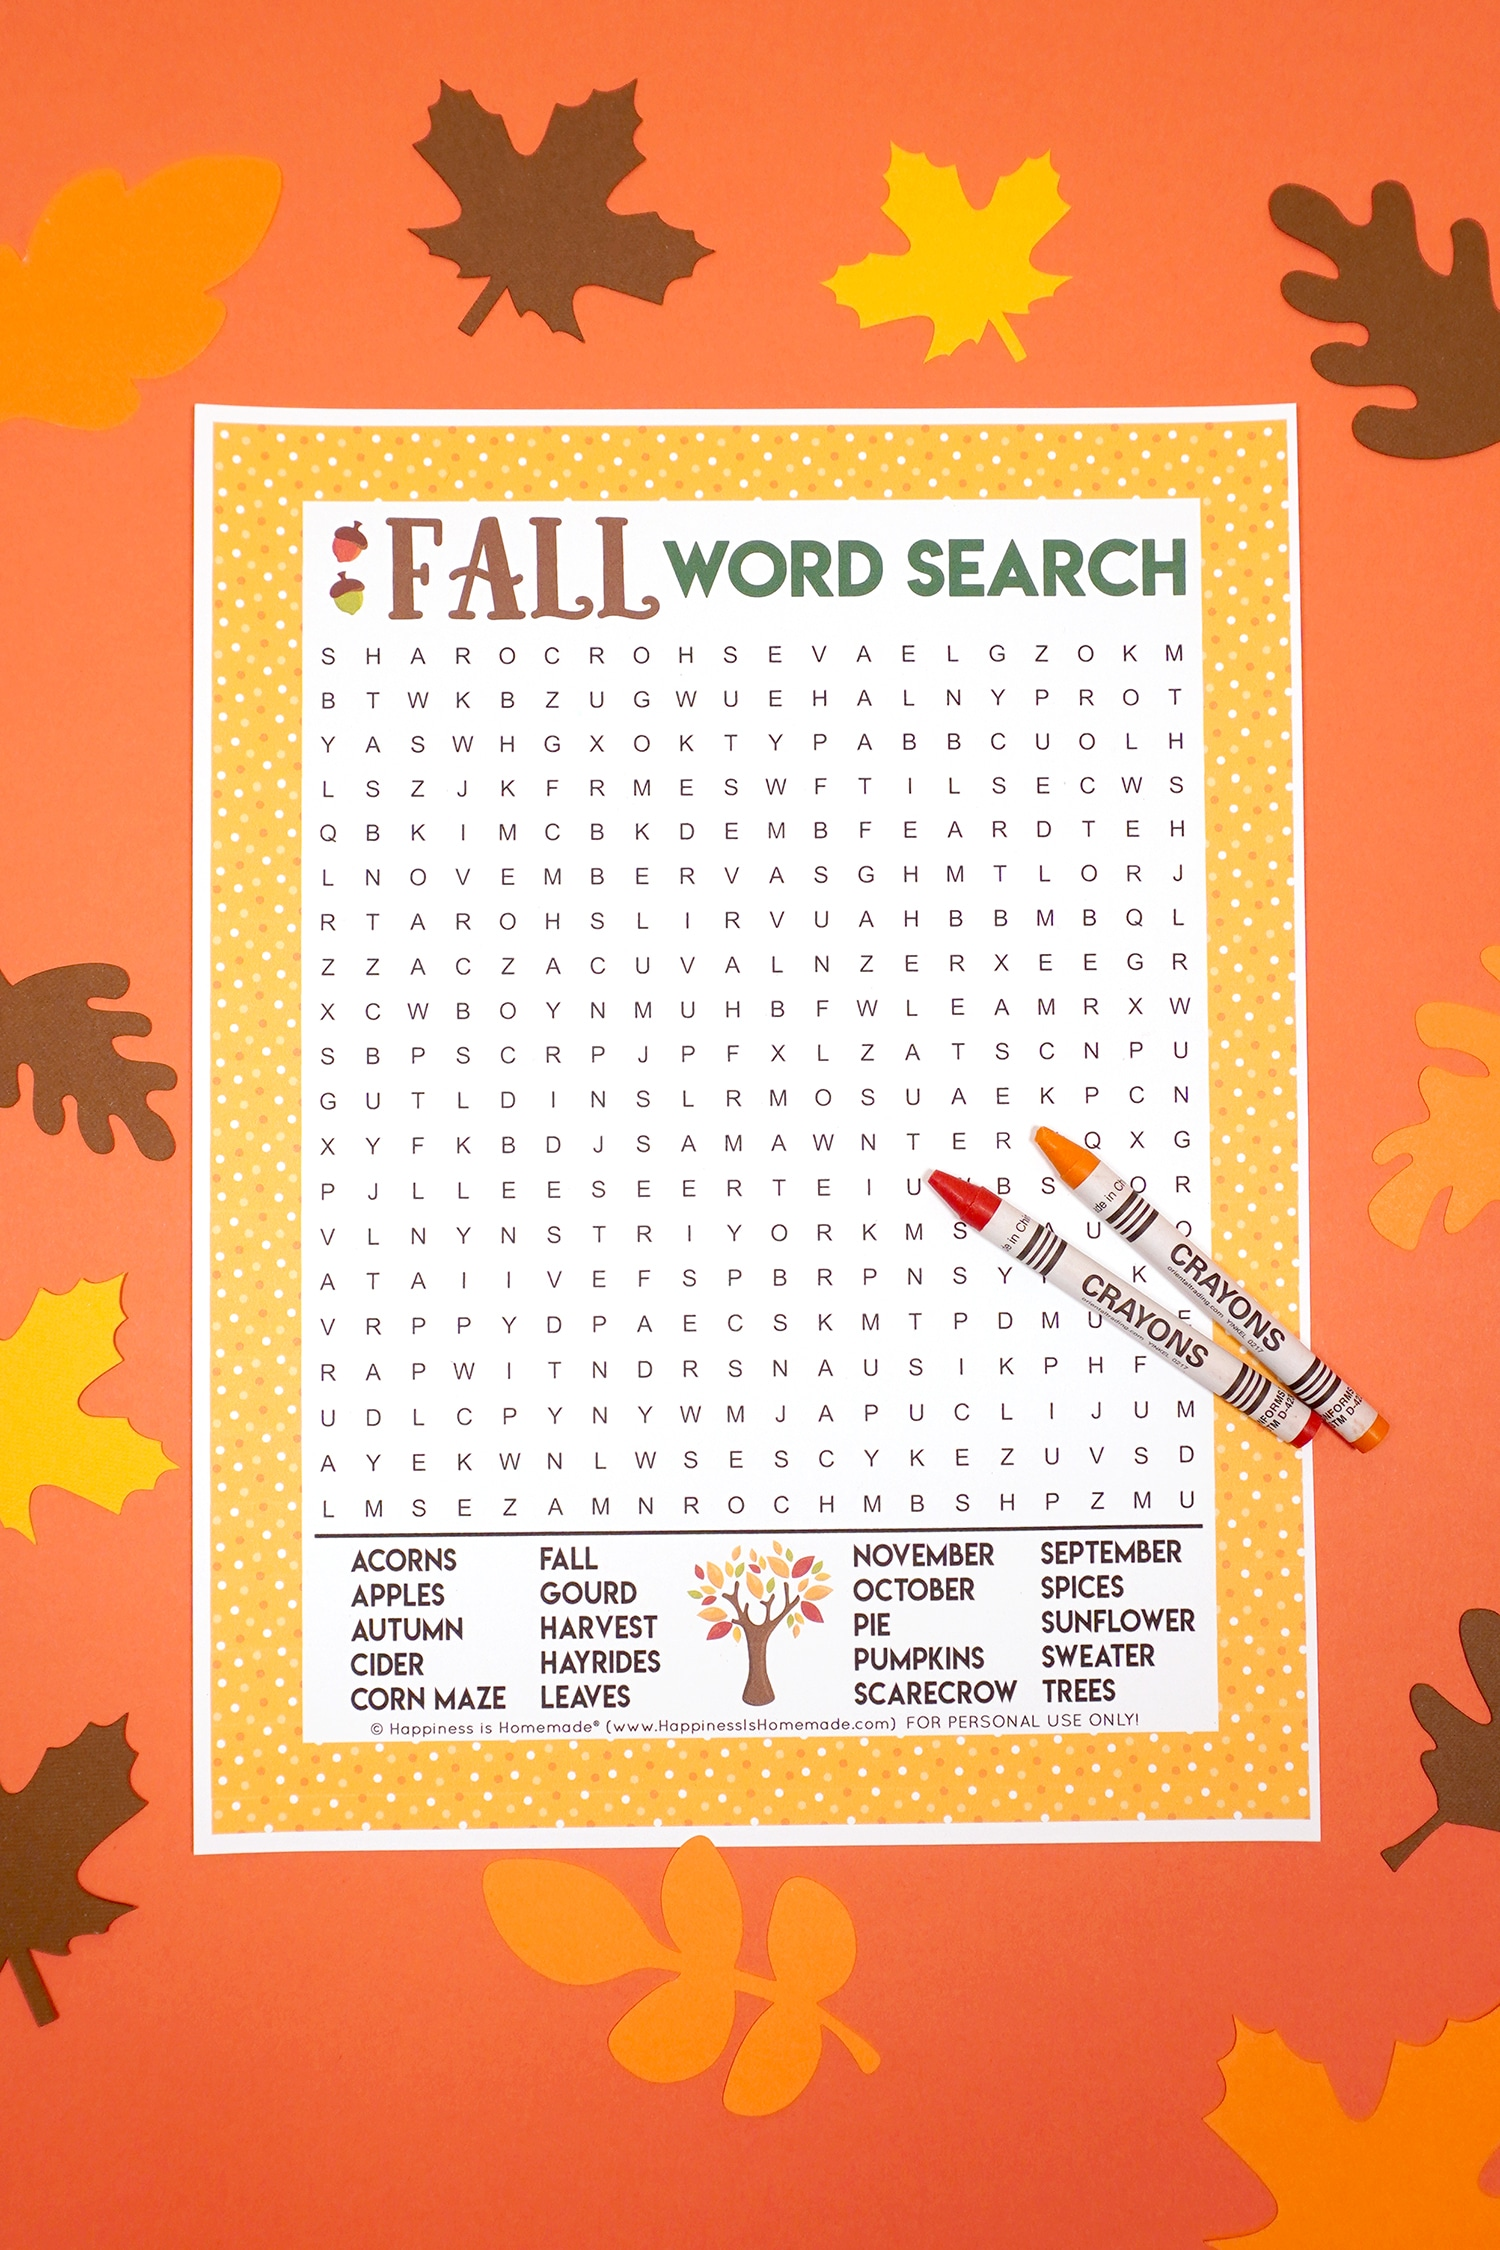 Fall Word Search Printable